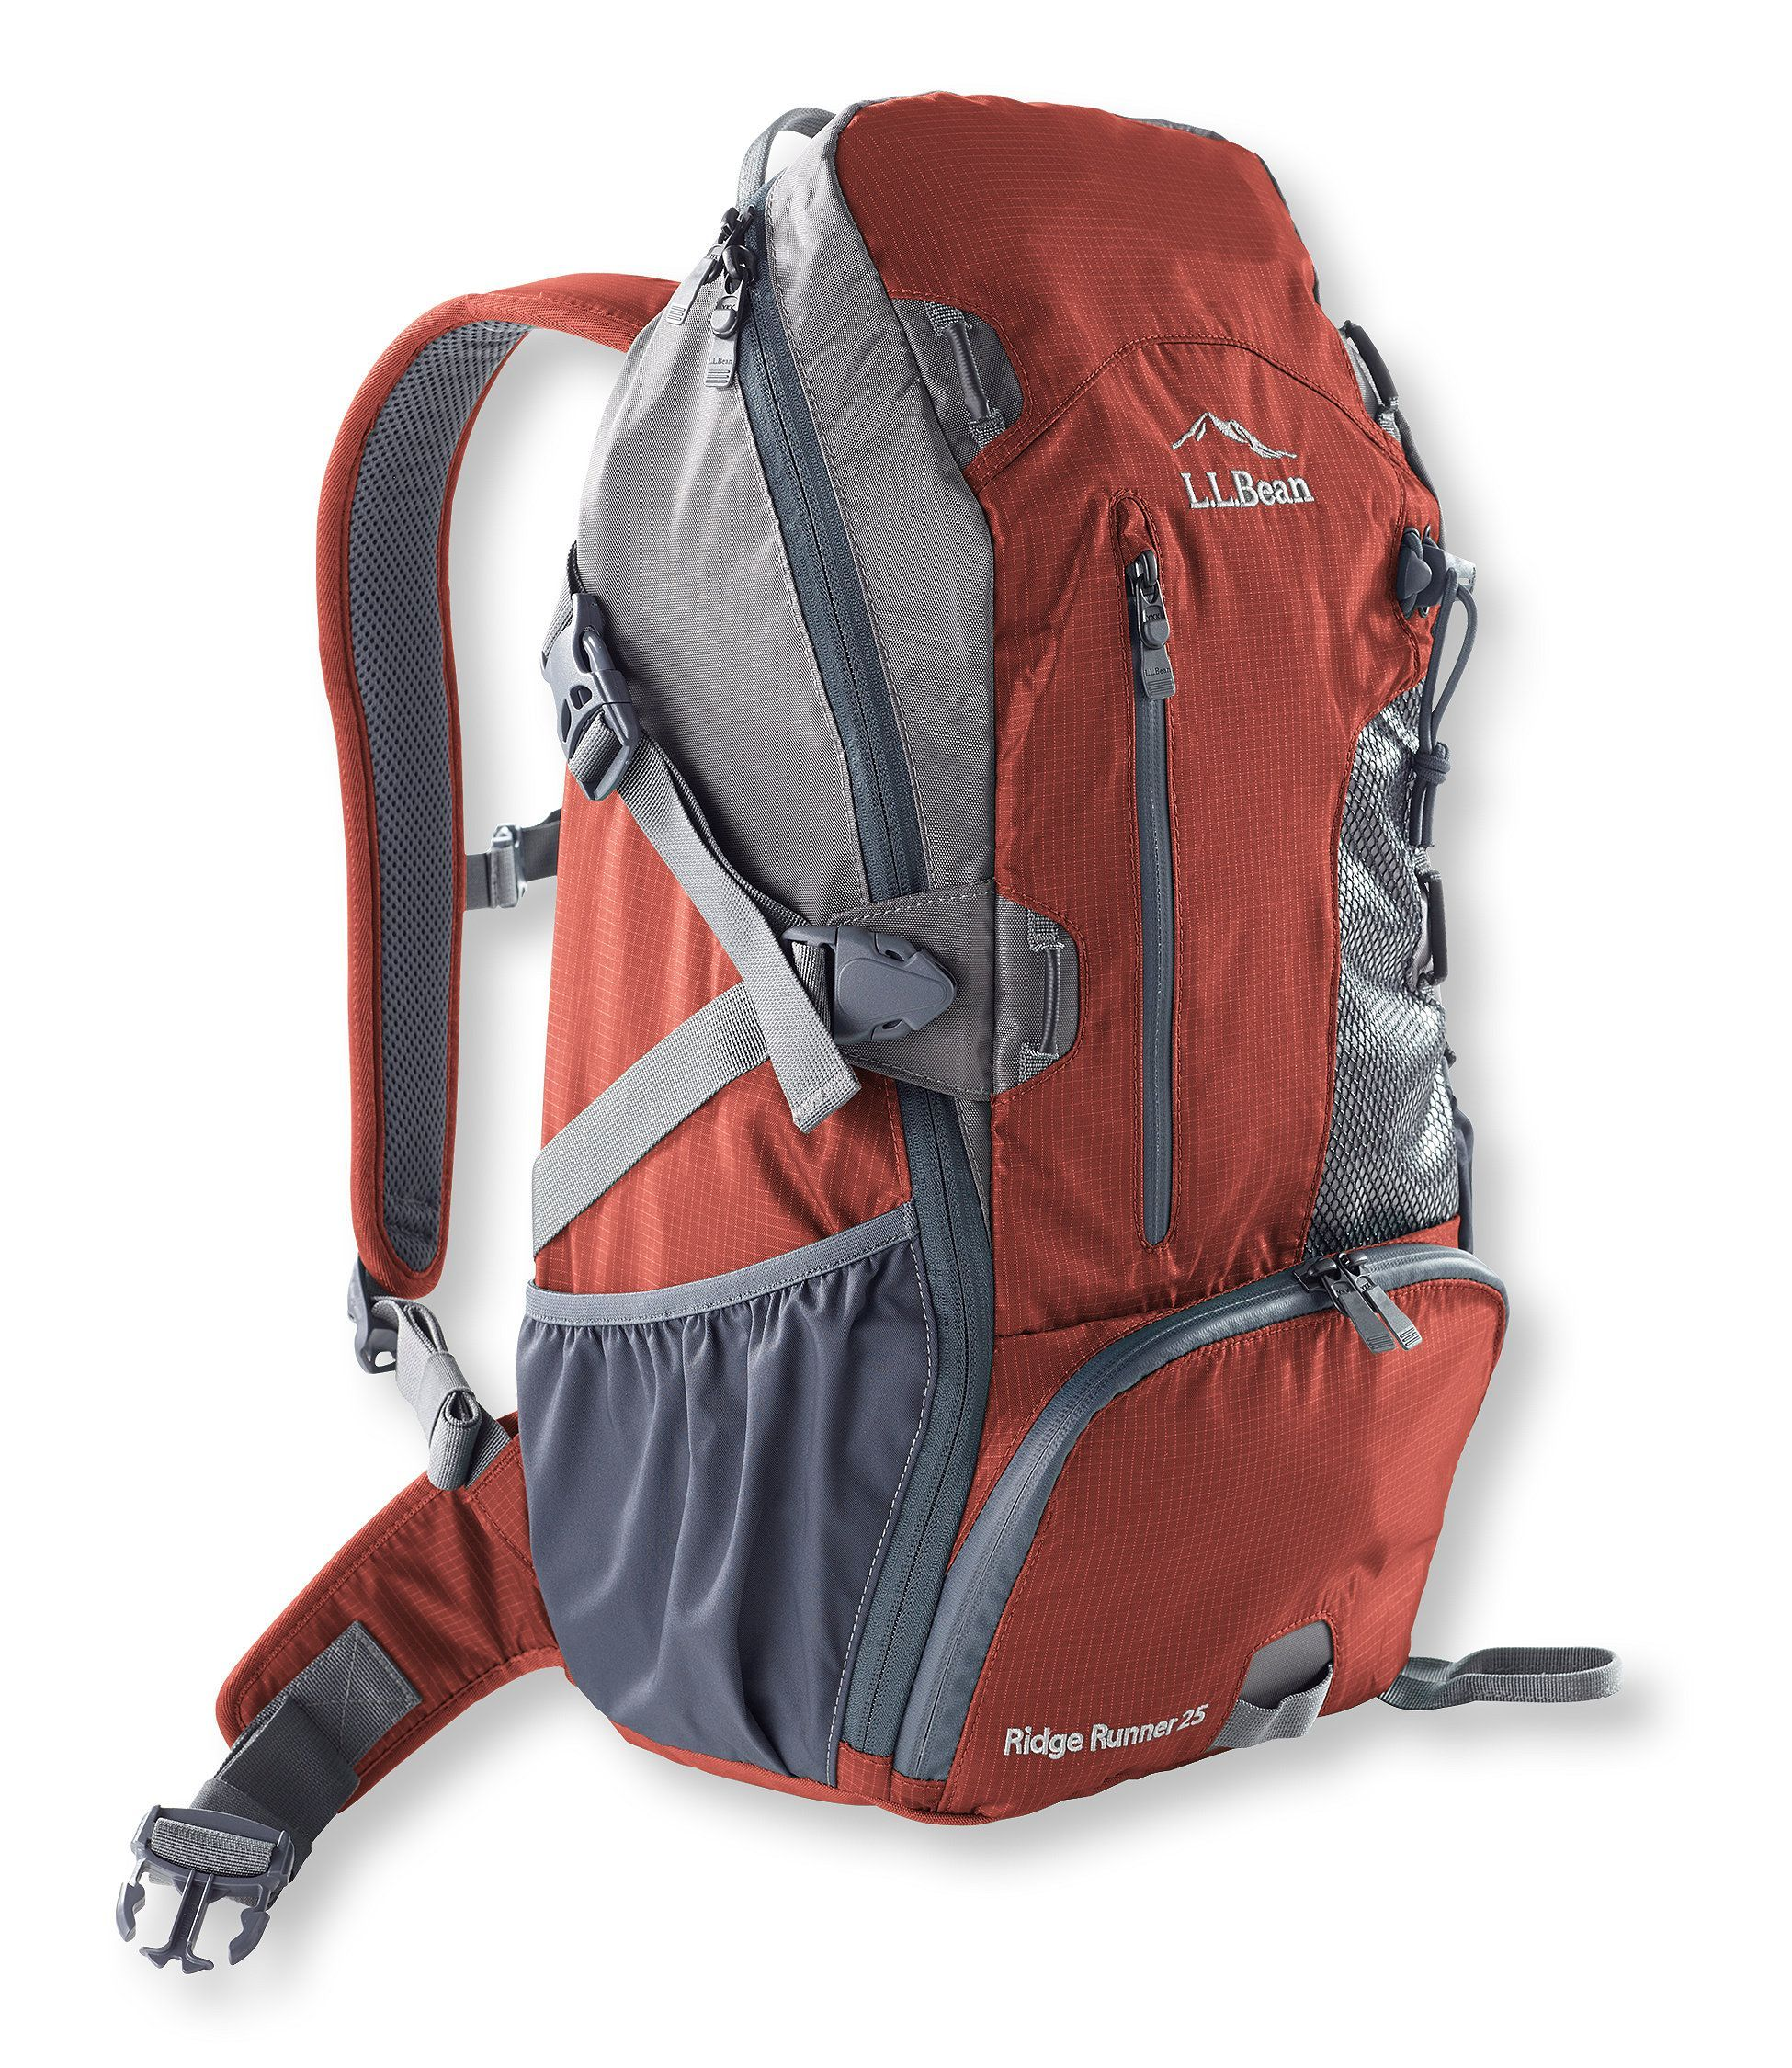 Ridge Runner 25 Day Pack Hiking gear, Backpacking gear